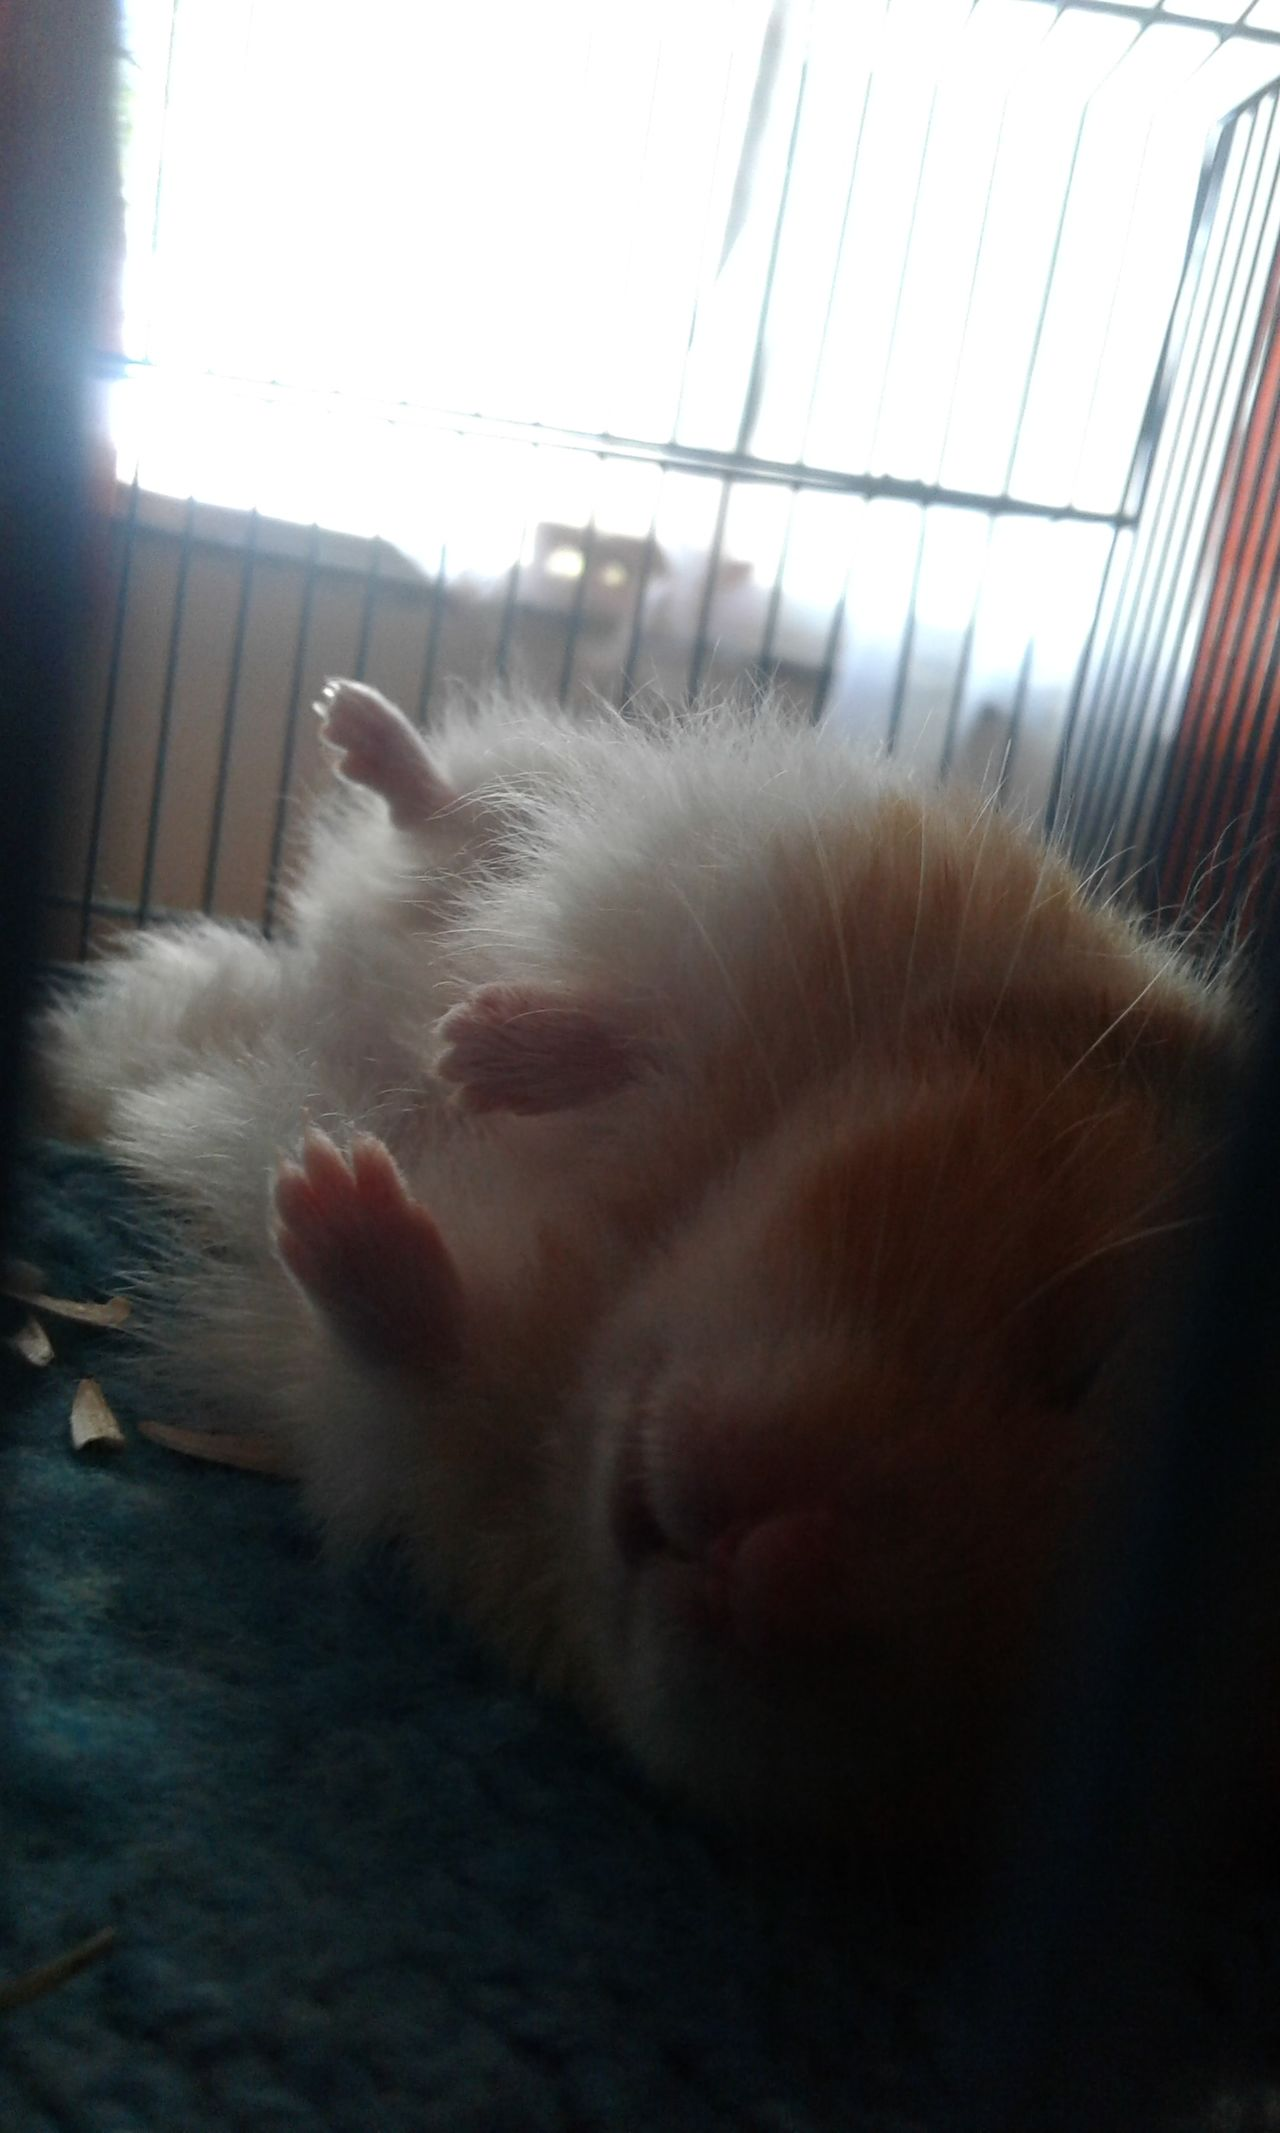 You look so cute my little baby♡ sweet dreams (=^u^=) Hamster Sleep Dreams Cute Sweet Animal Pet Family Sweet Dreams Beautiful Wonderful Without Filters Hermosa Mascota Dormir Dulces Sueños